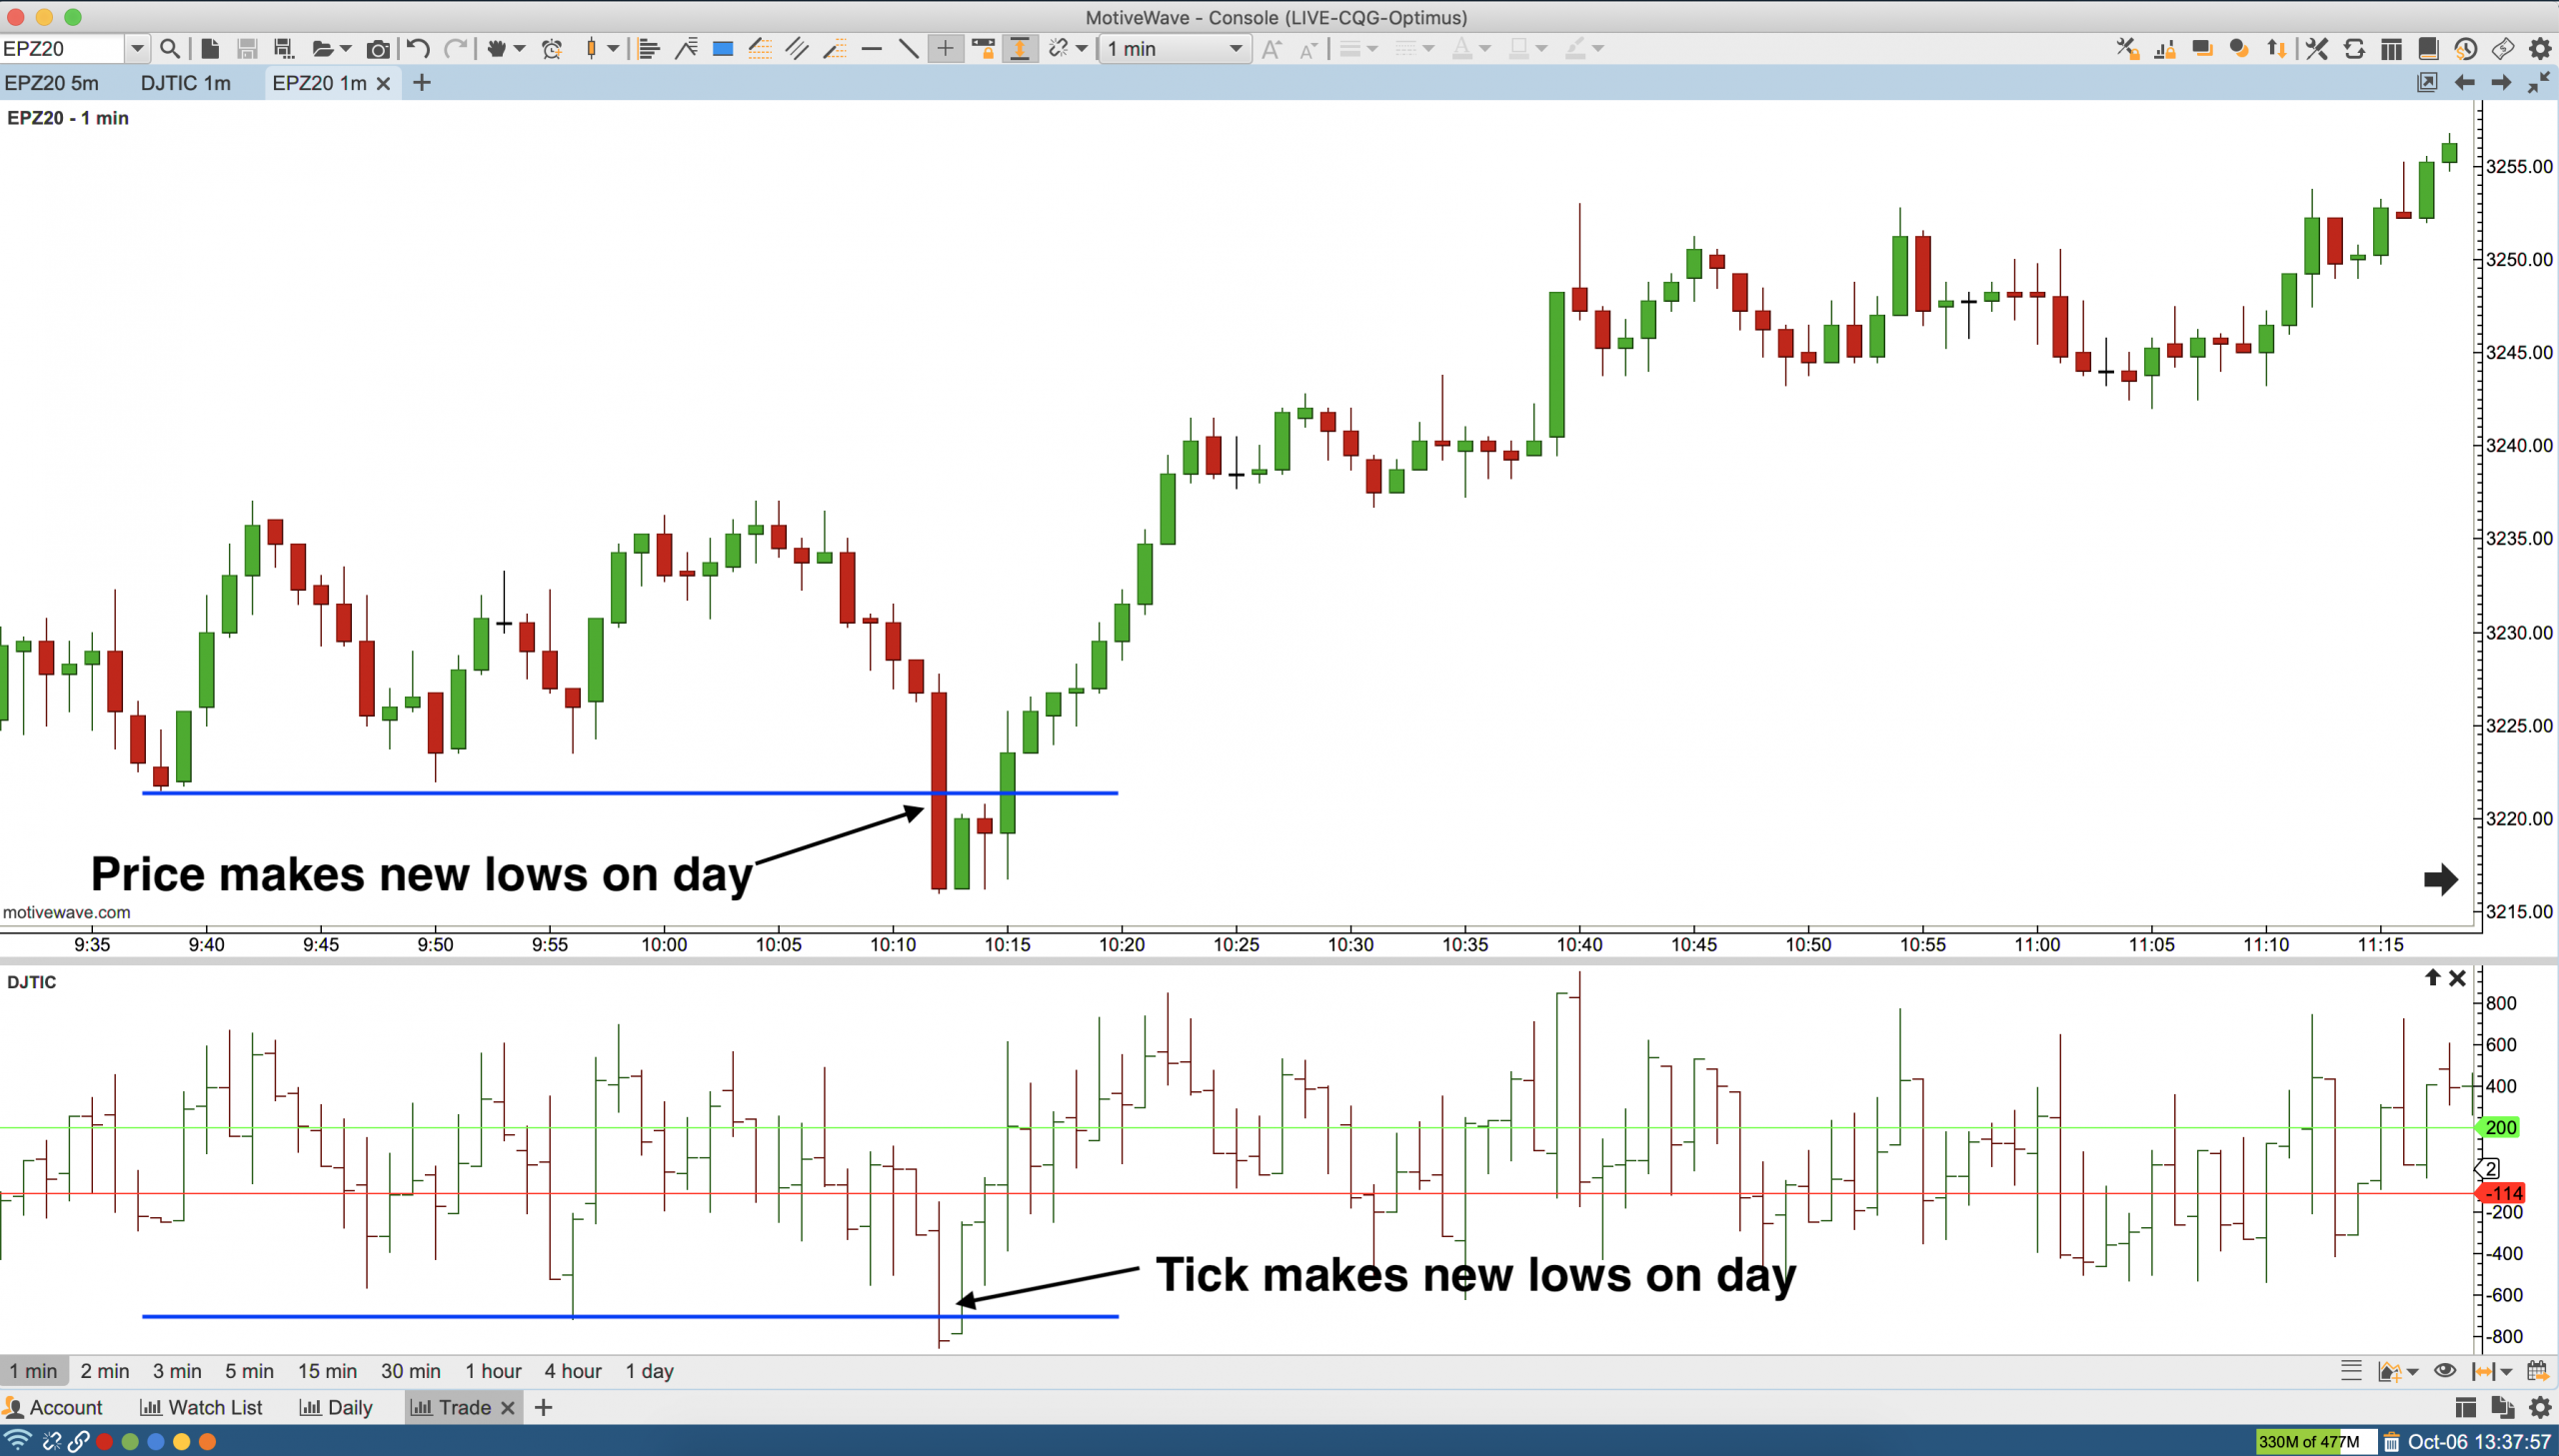 Intraday Low NYSE Tick